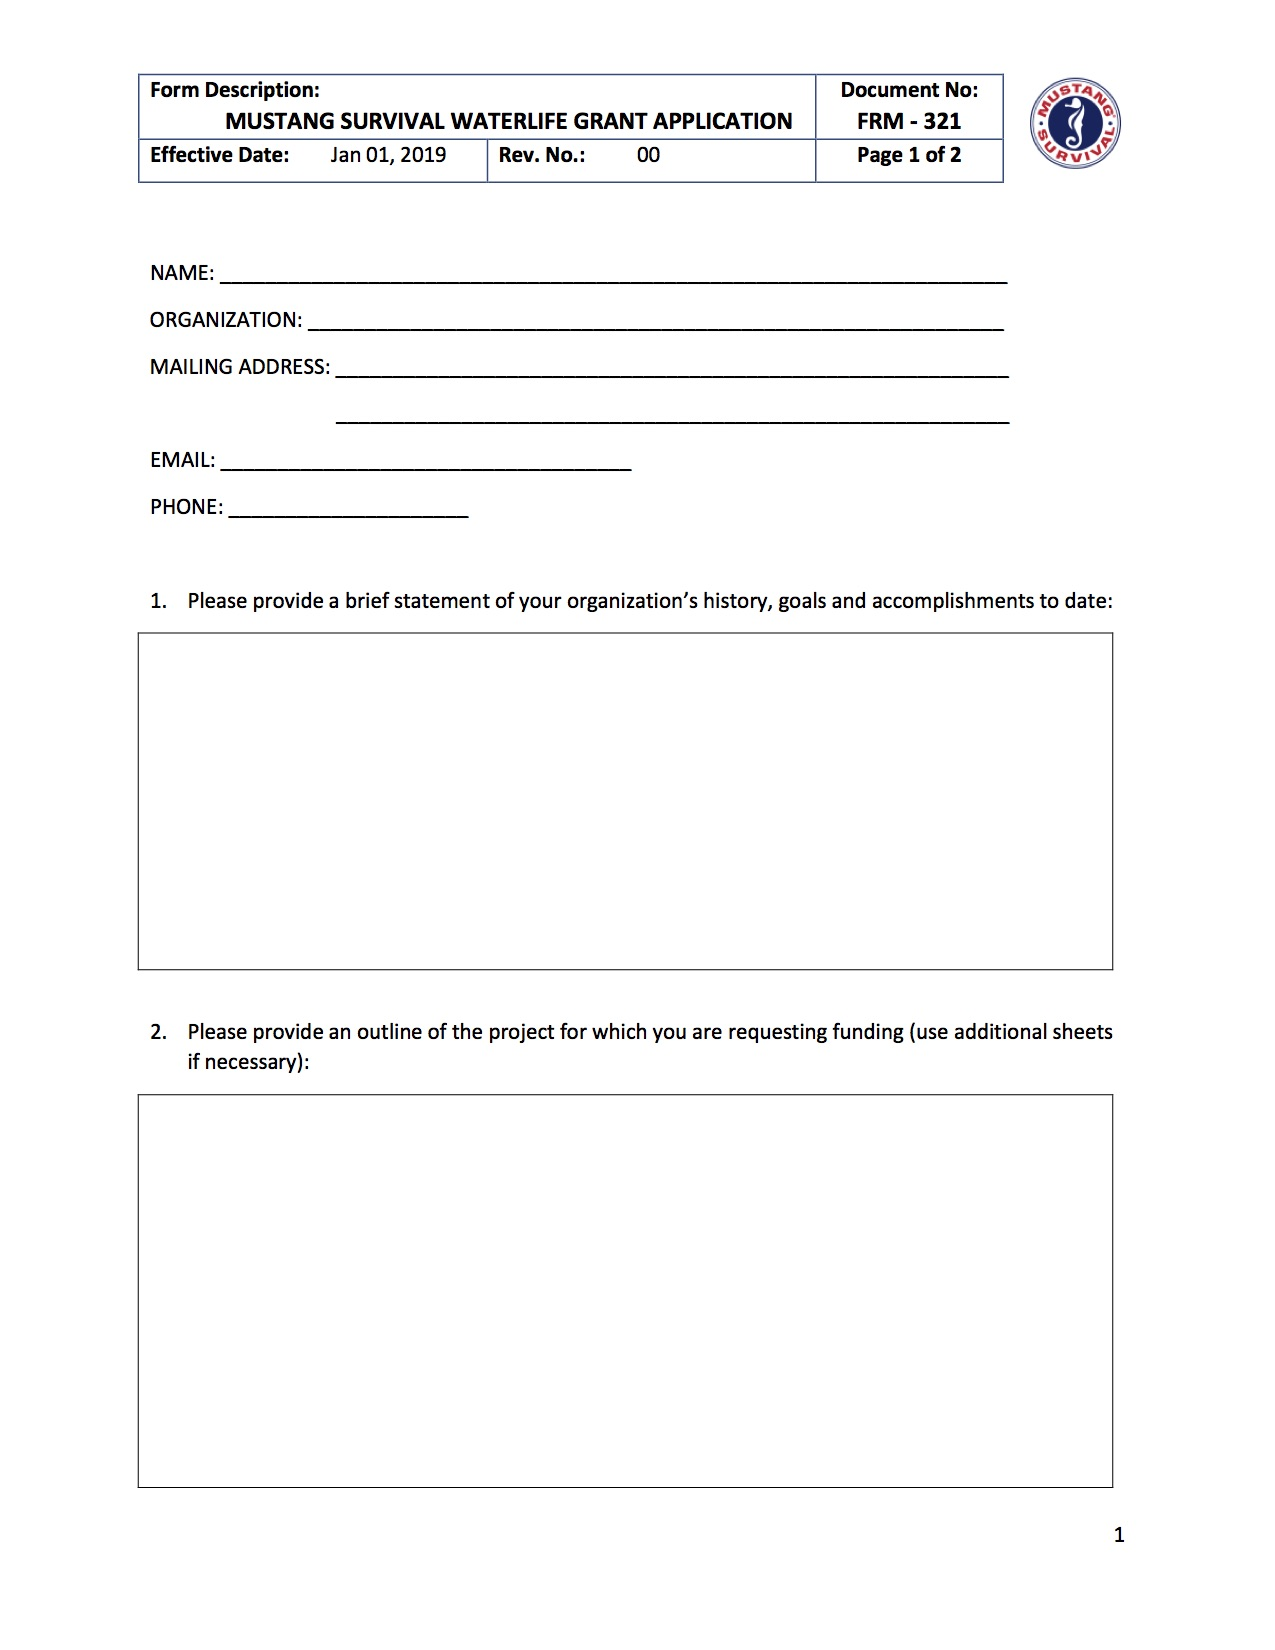 Mustang_Philanthropy_Waterlife_Grant_application_form_-_Pg_1.jpg